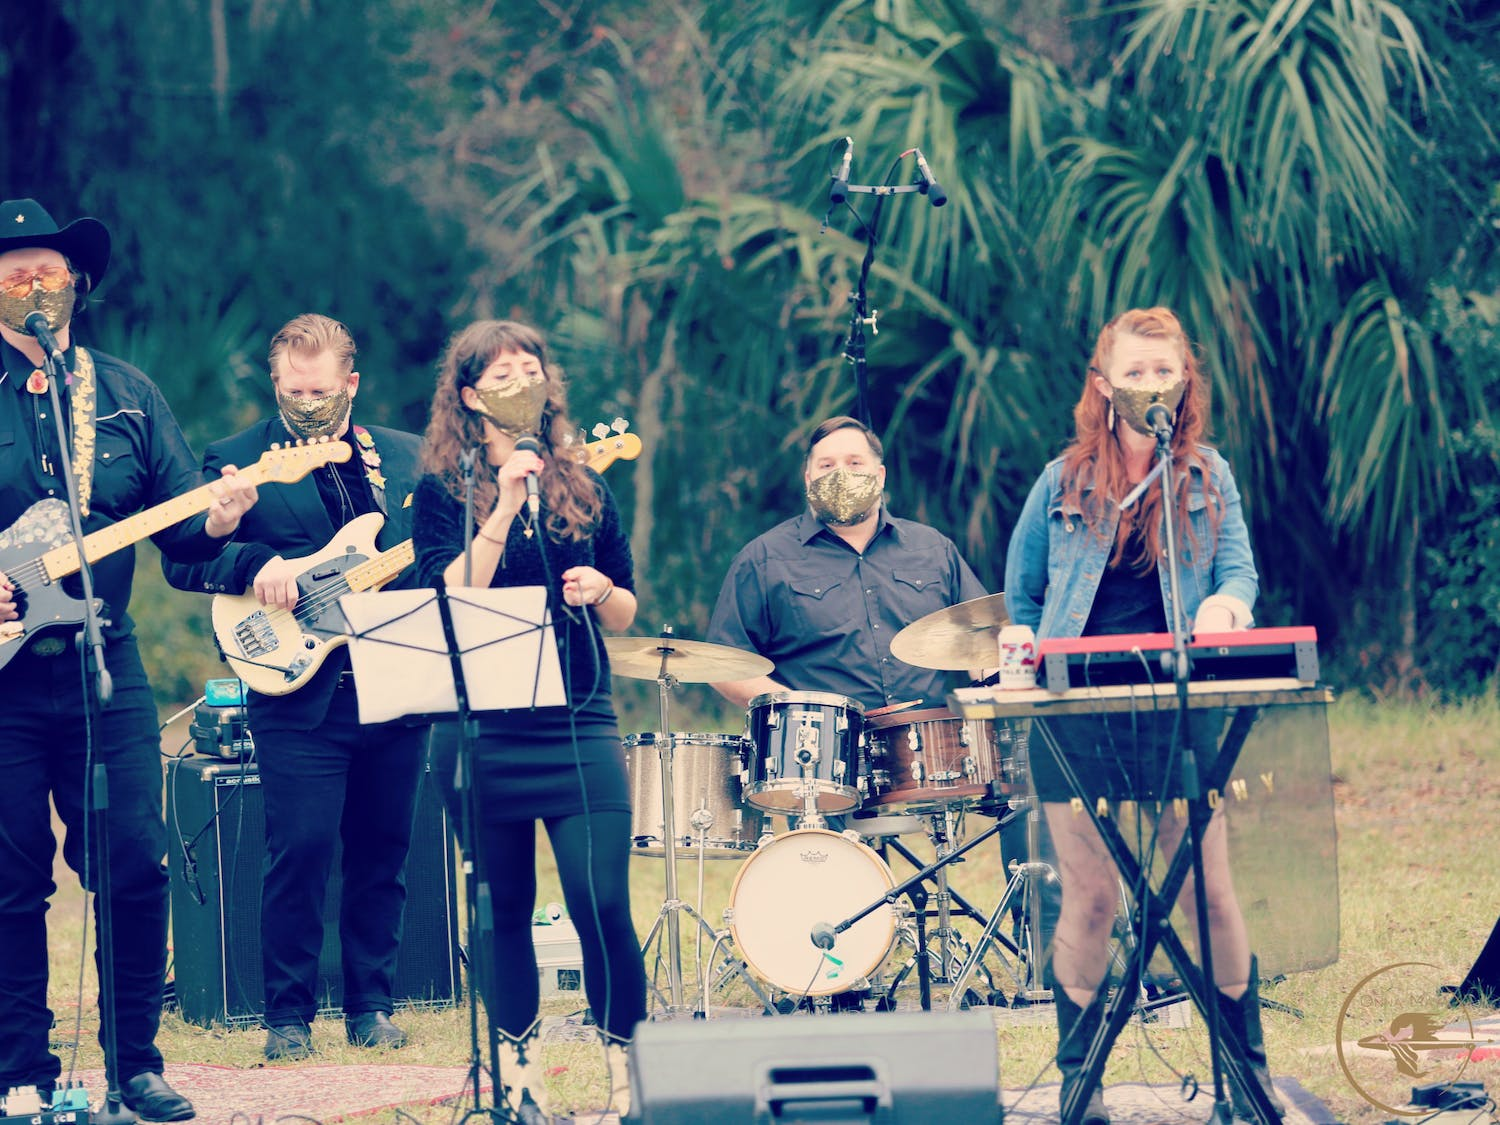 Saturday's show was held at Prairie Creek Preserve, one of the natural spaces under the protection of the Alachua Conservation Trust.